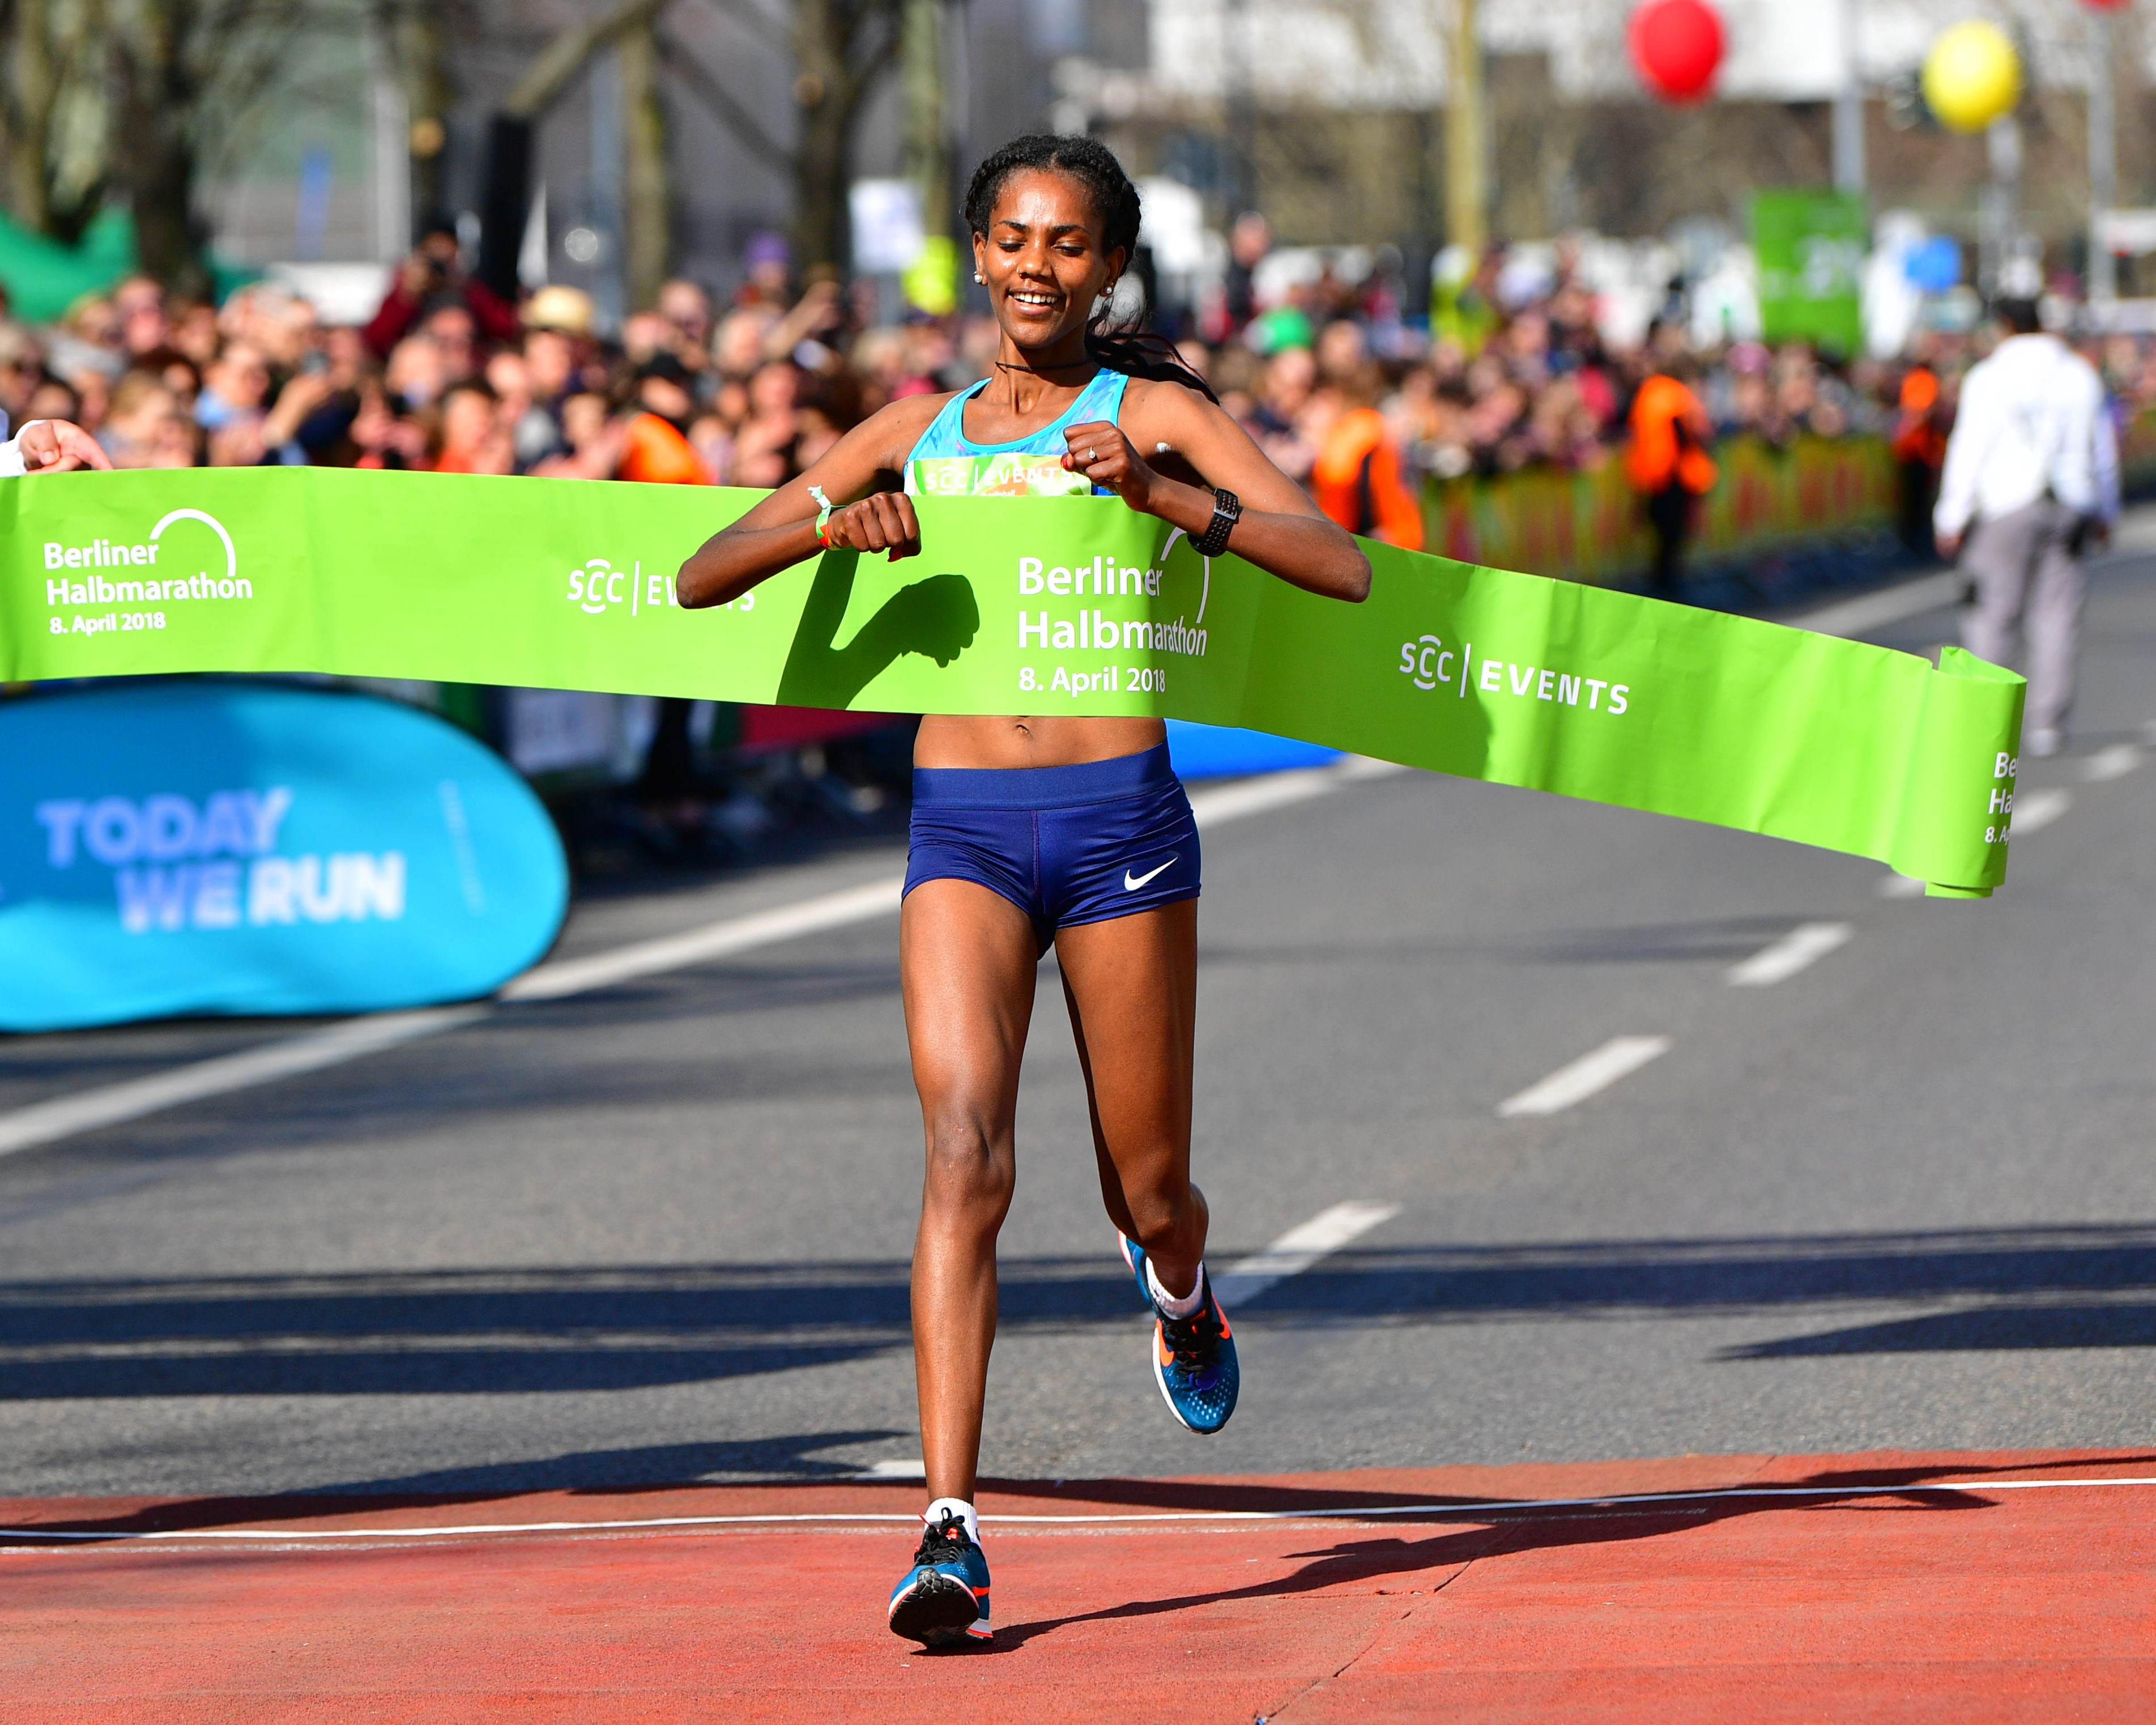 Melat Kejeta is going run her marathon debut in Berlin